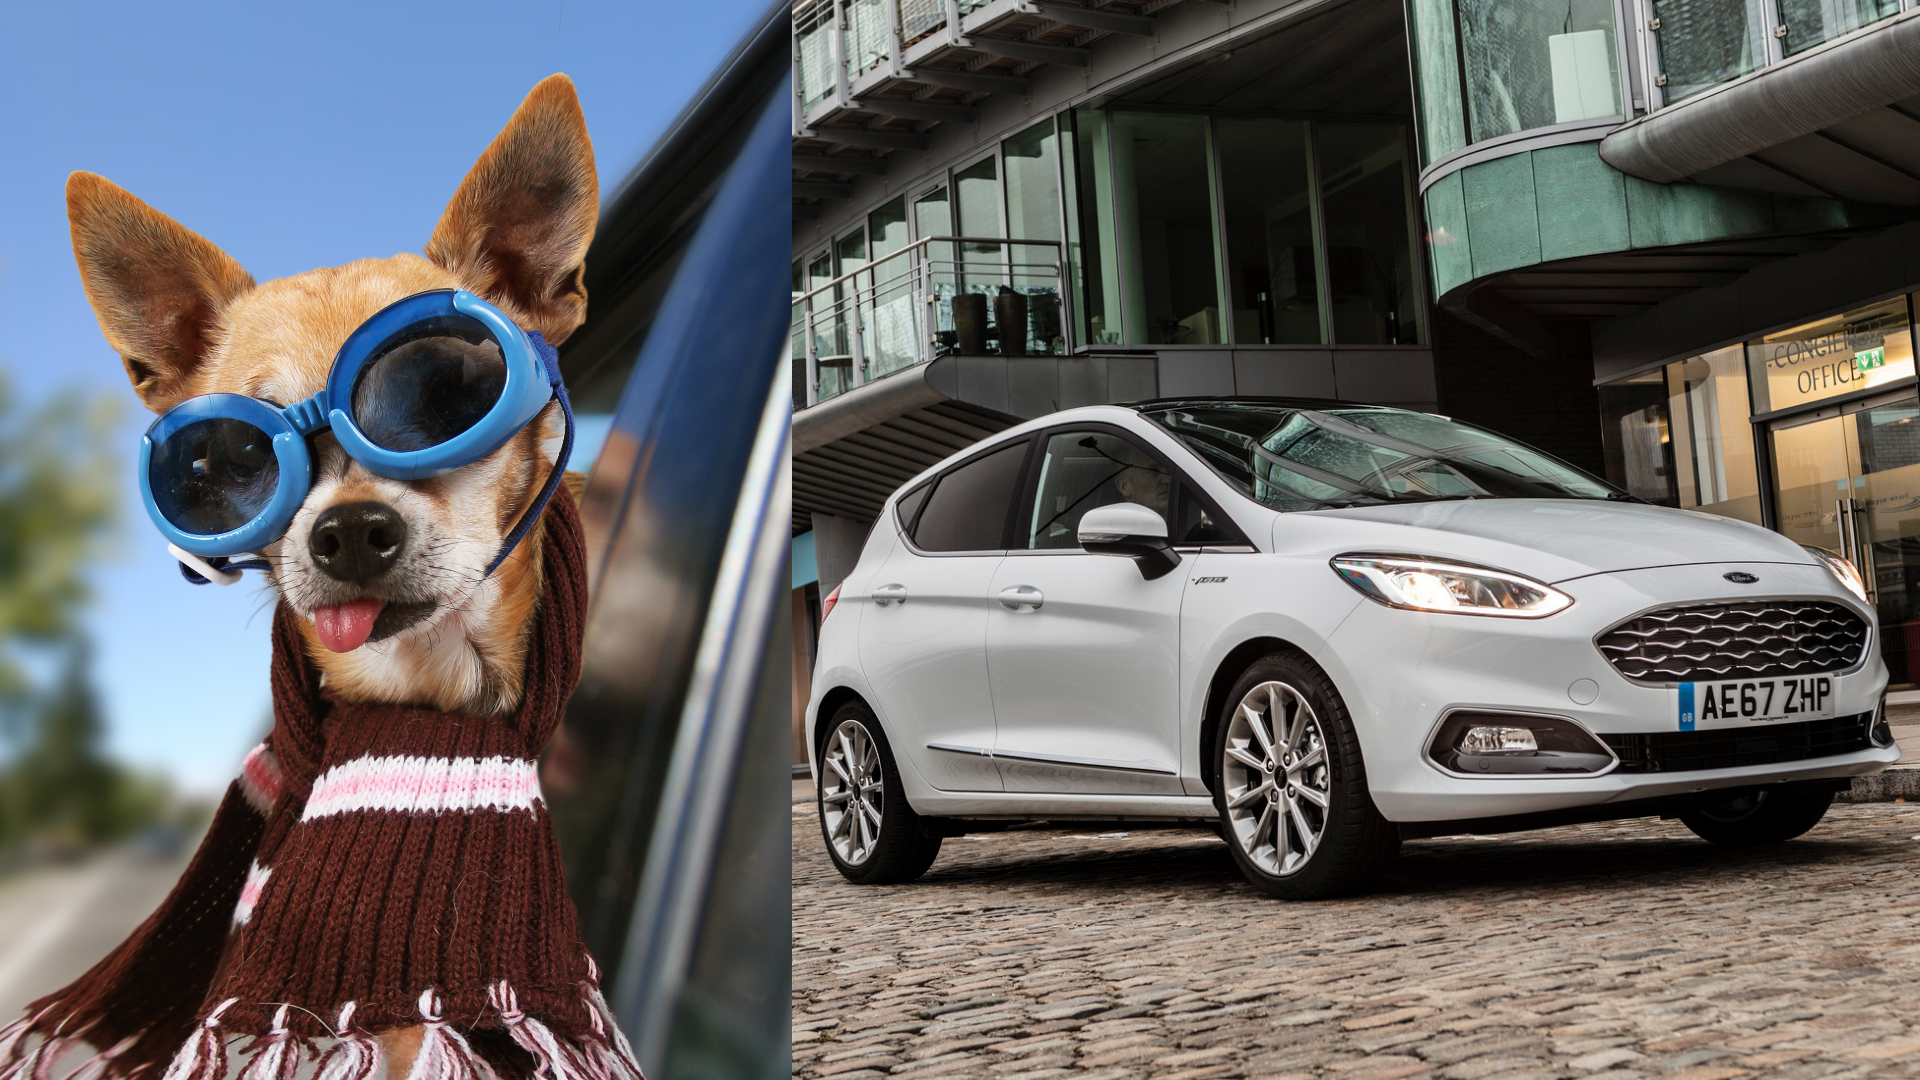 Dogs more expensive than cars on insurance